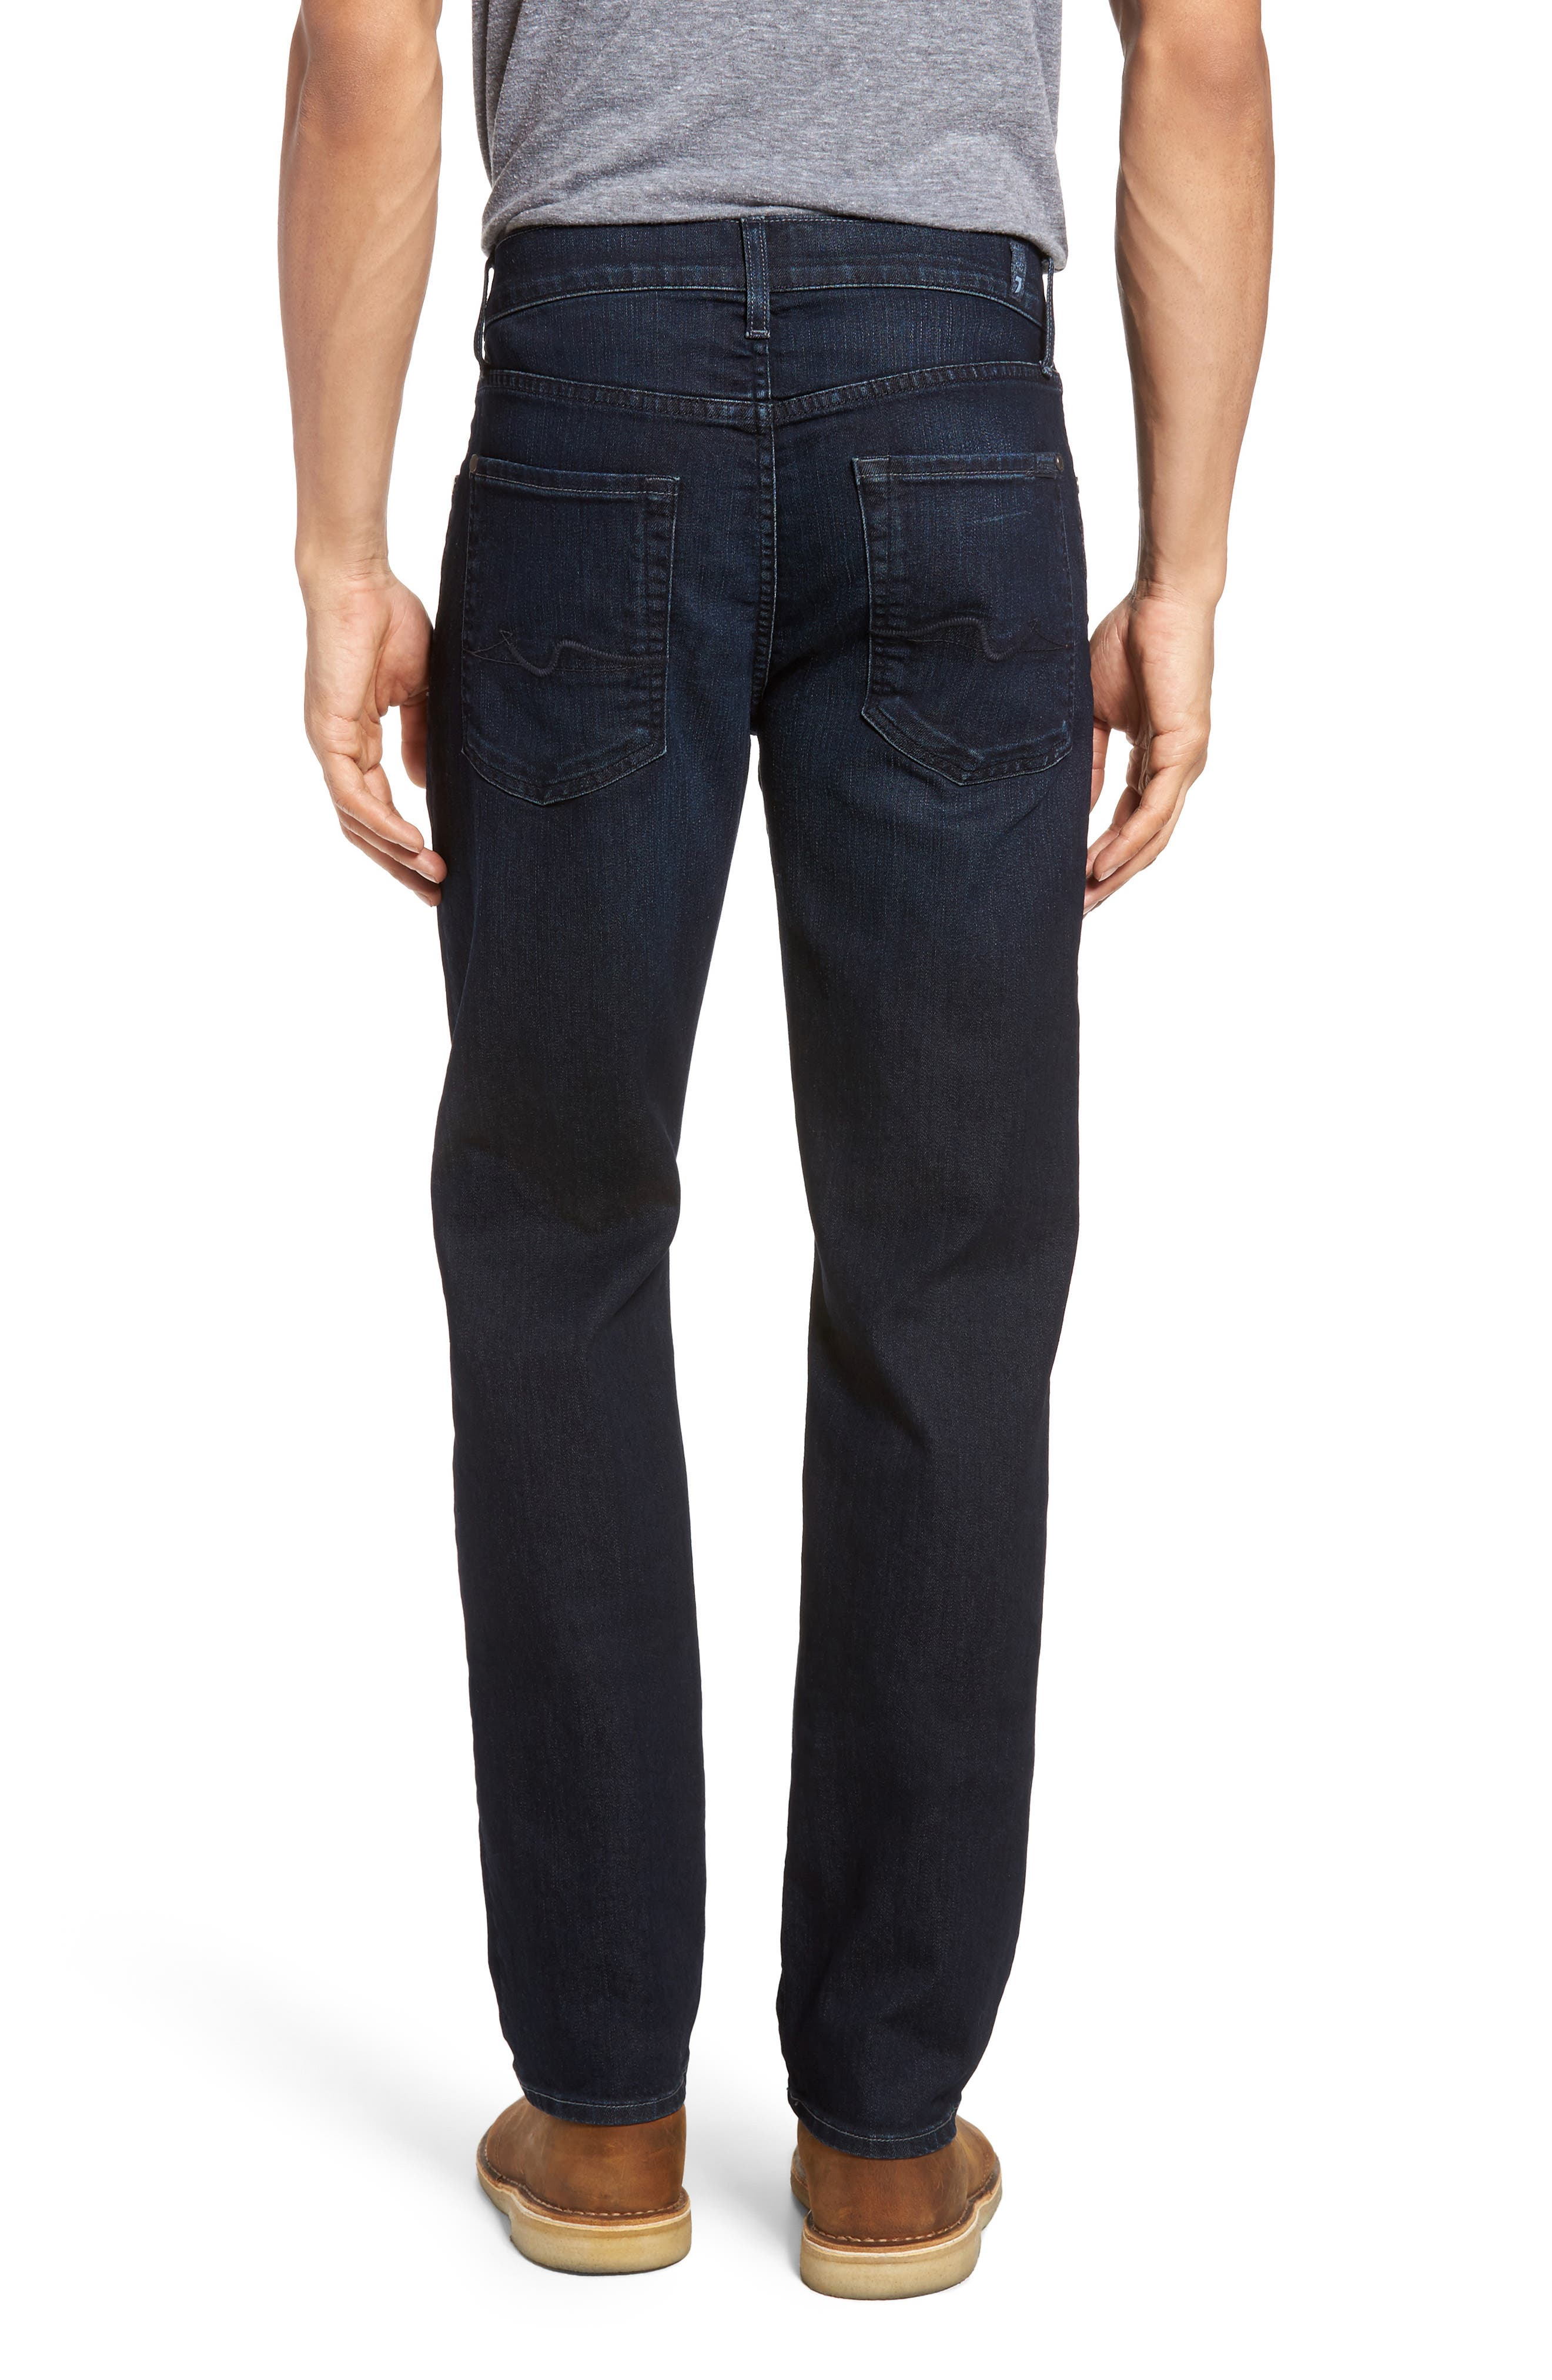 Alternate Image 2  - 7 For All Mankind® Slimmy AirWeft Slim Fit Jeans (Perennial)